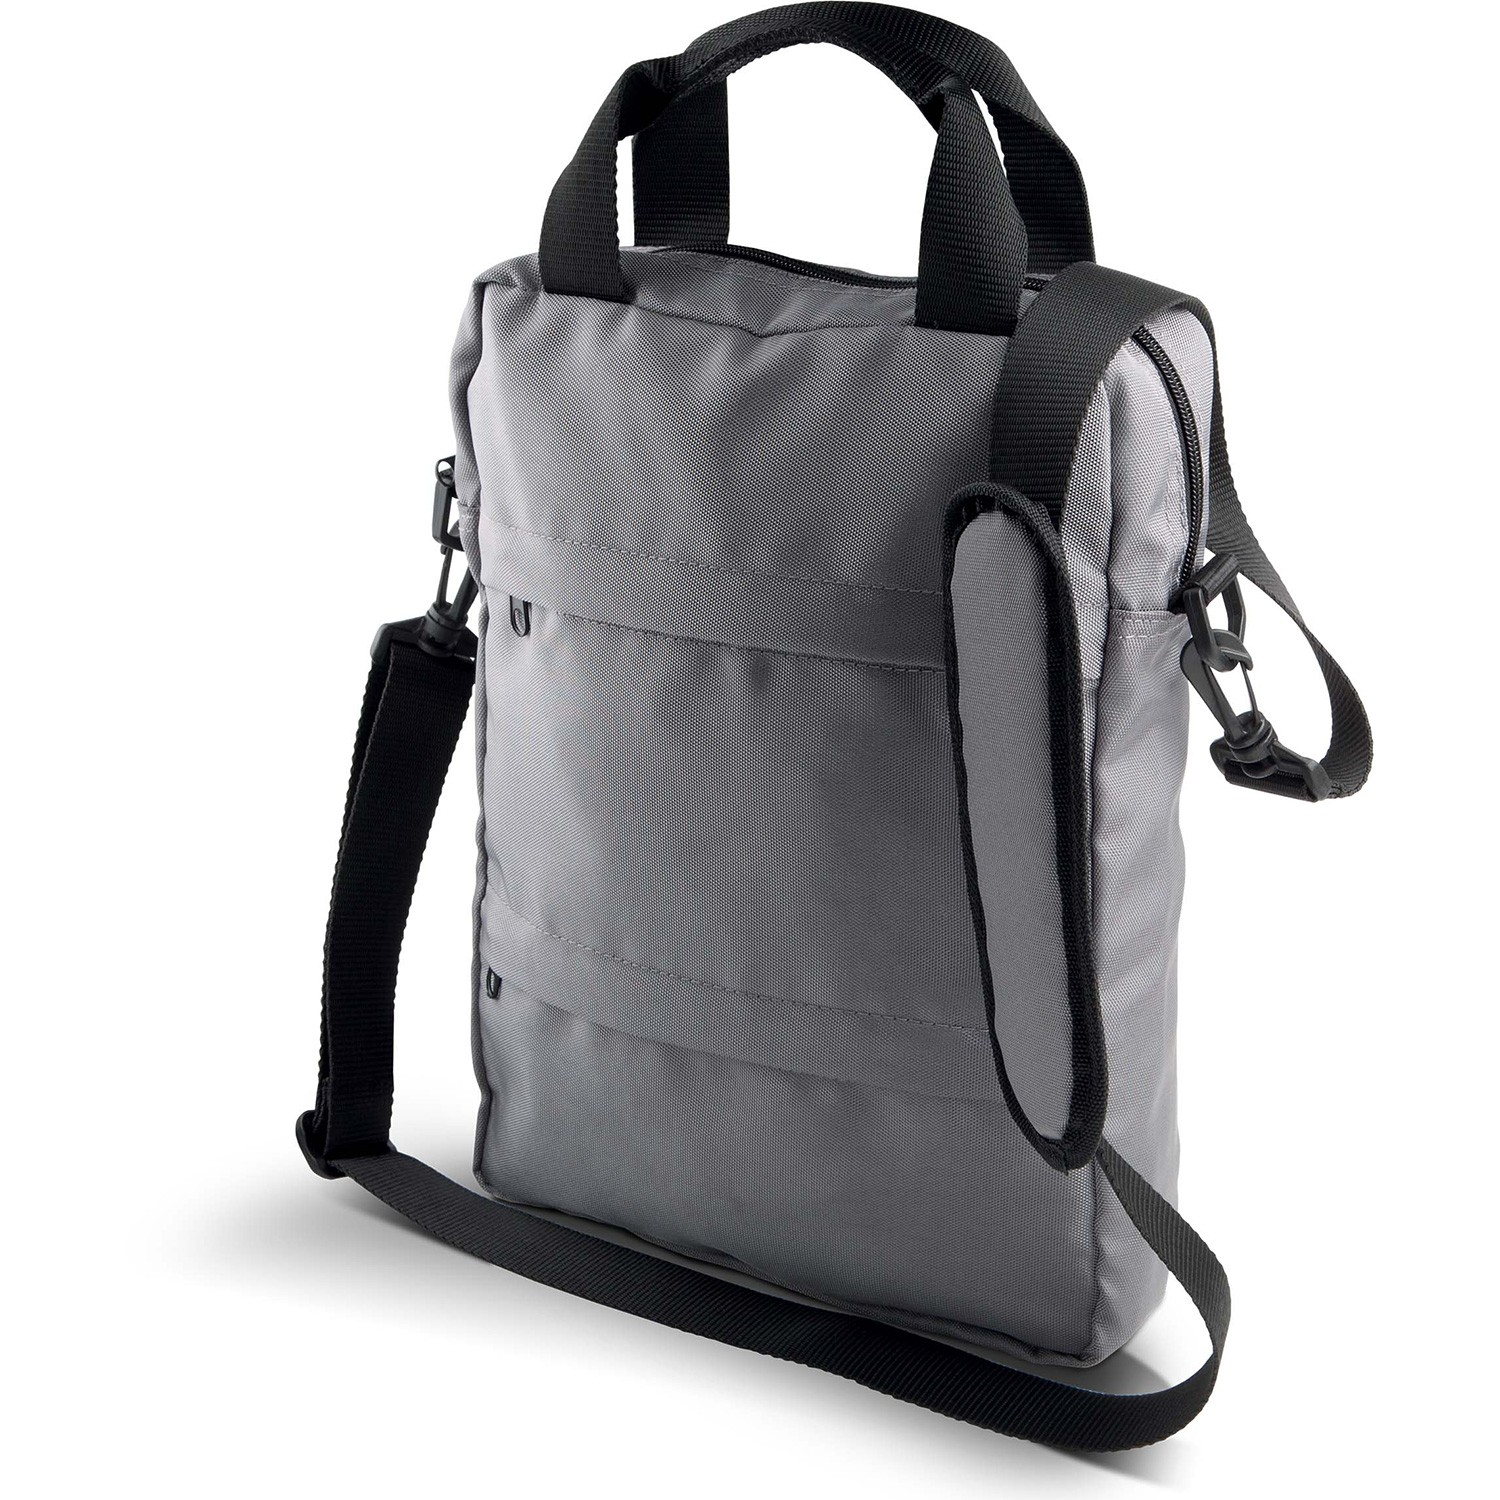 Sac messenger / Tablette